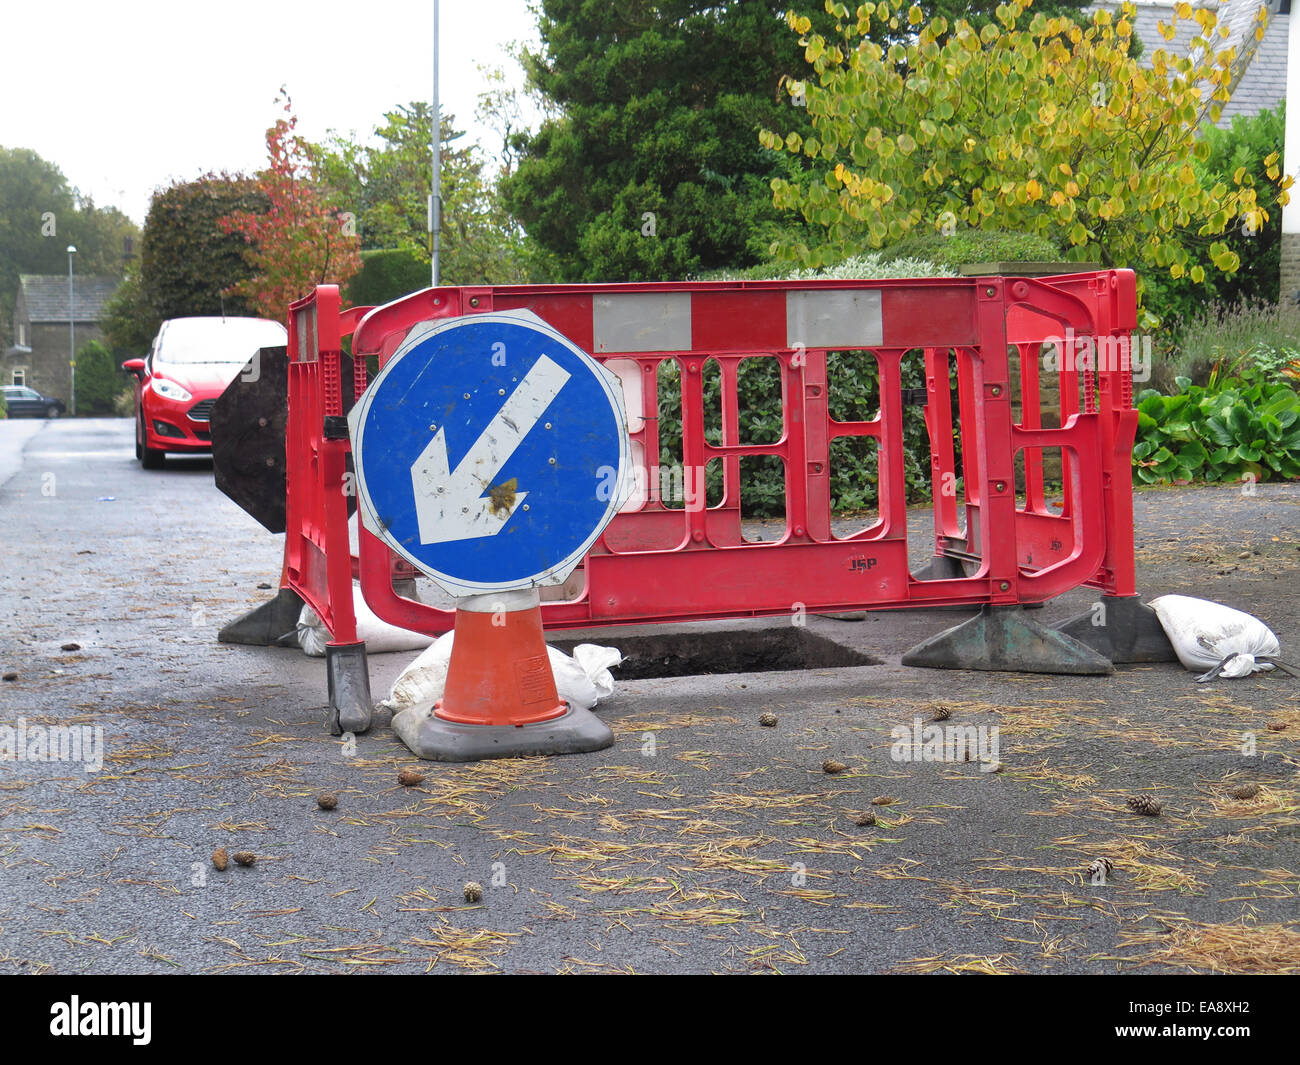 Roadworks with protective fencing around hole in road - Stock Image